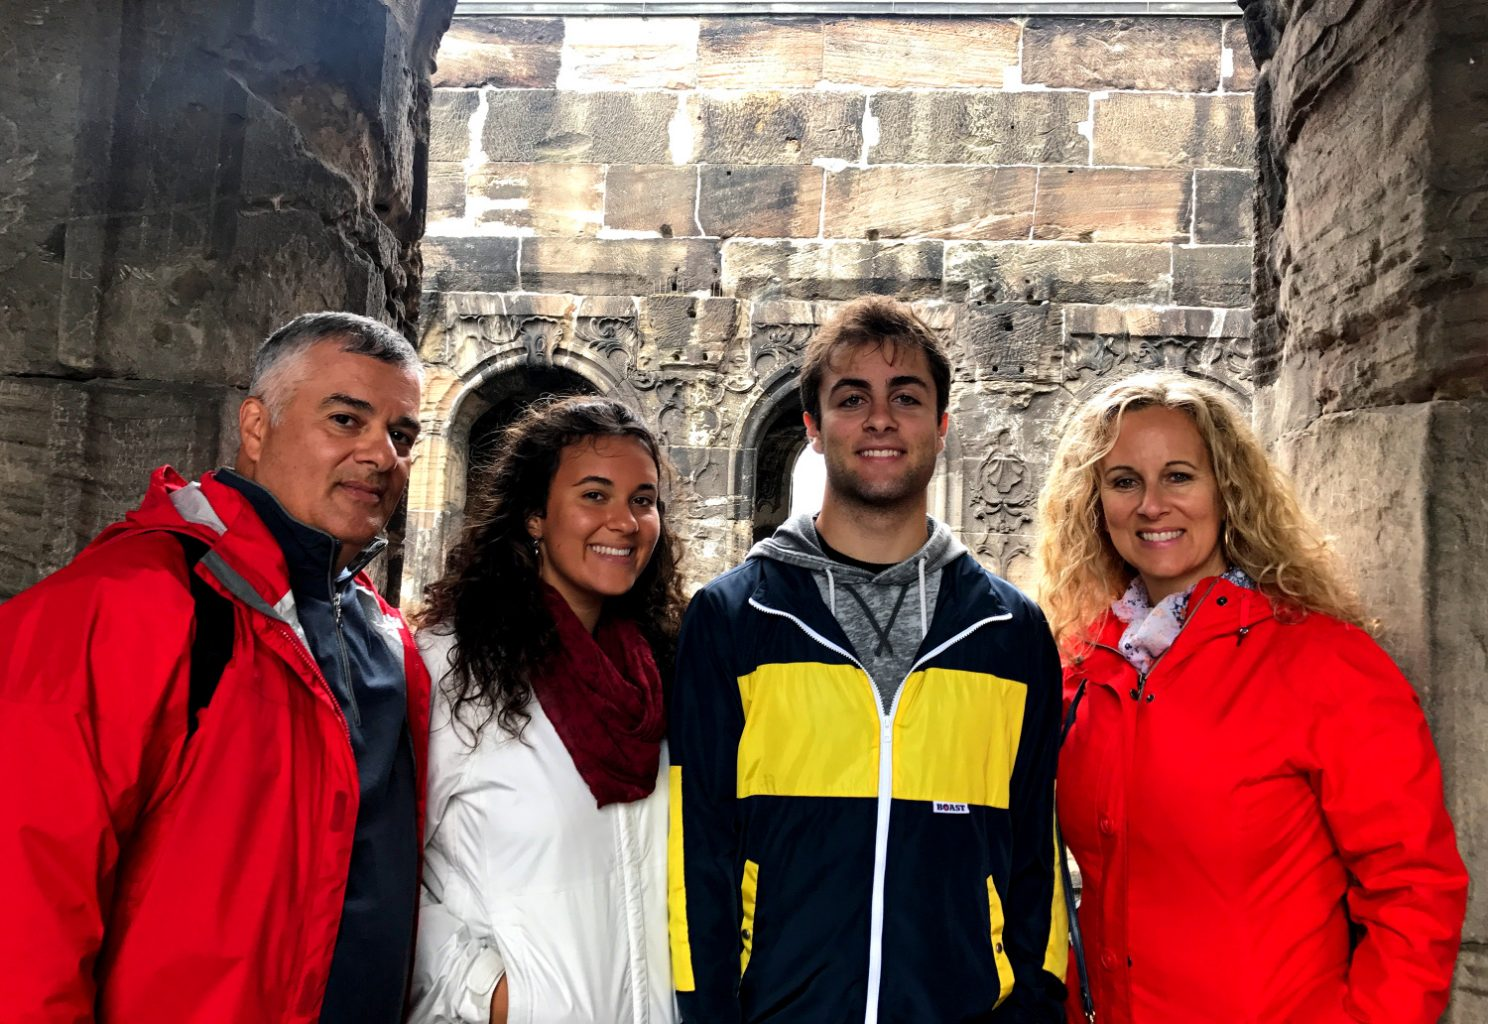 Enjoying German with teens - family photo in Trier